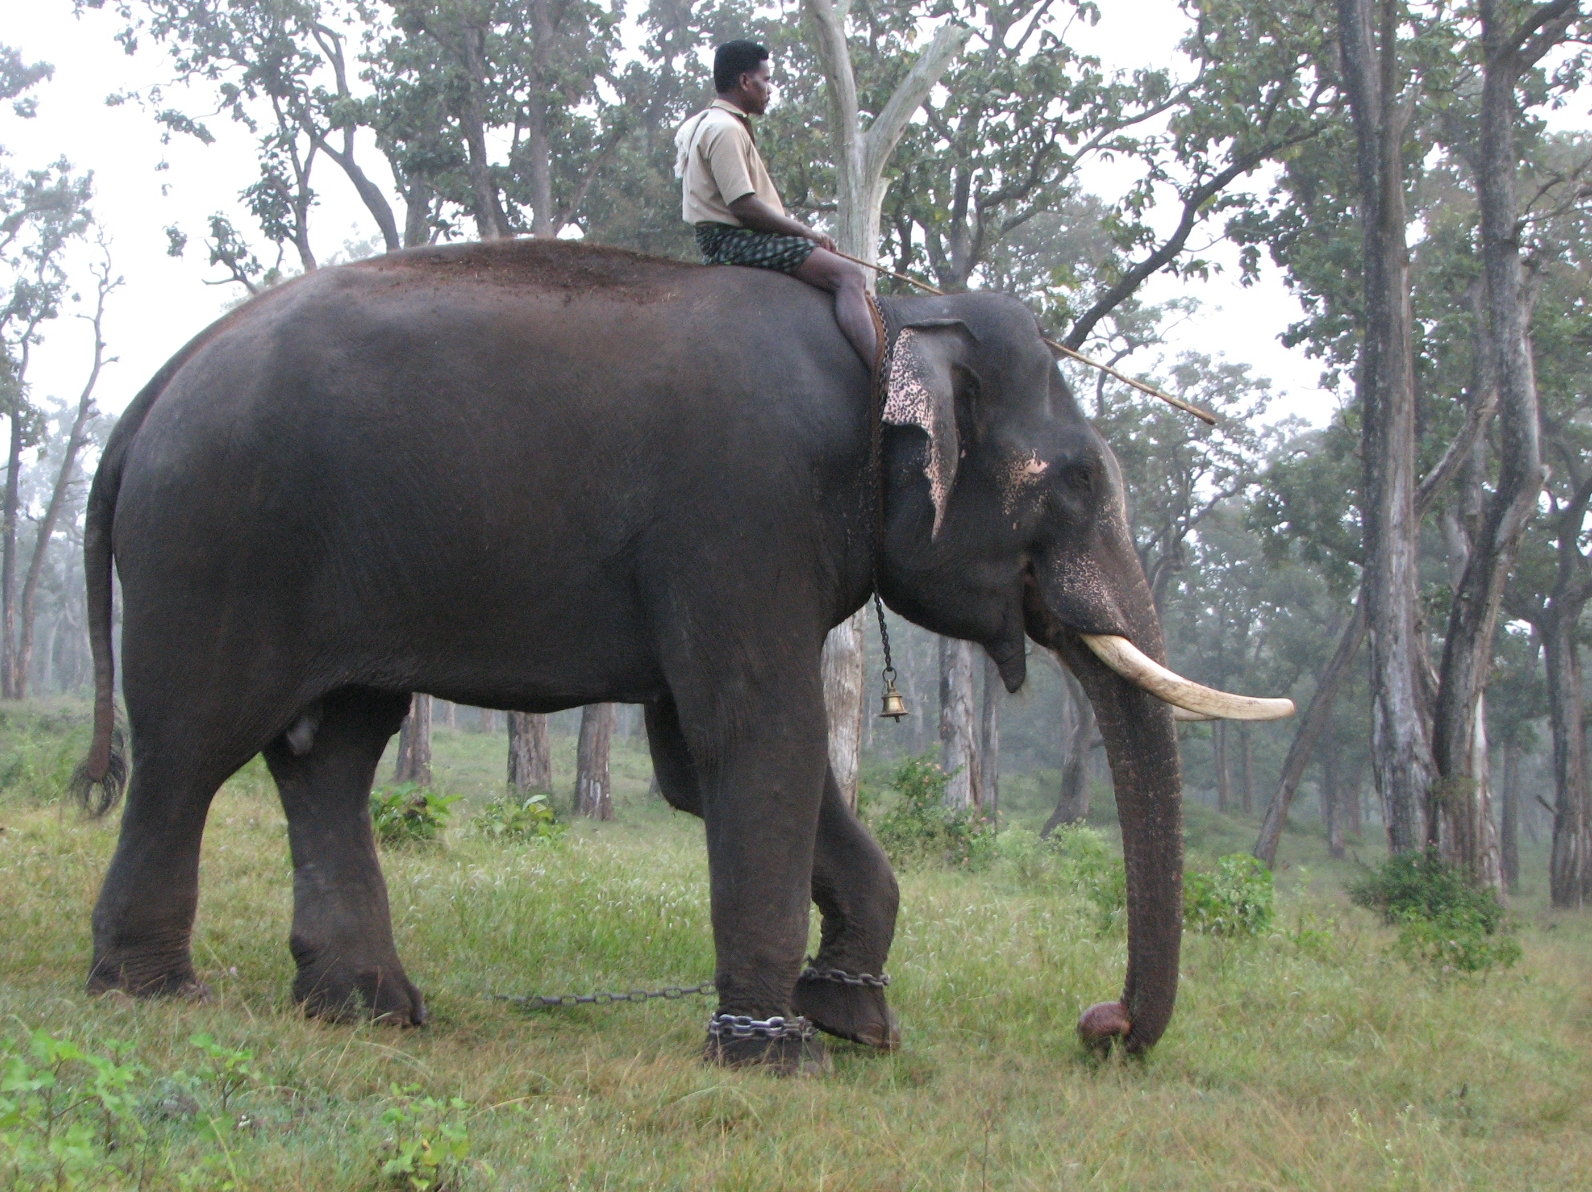 An Elephant inside Mathikettan Shola National Park